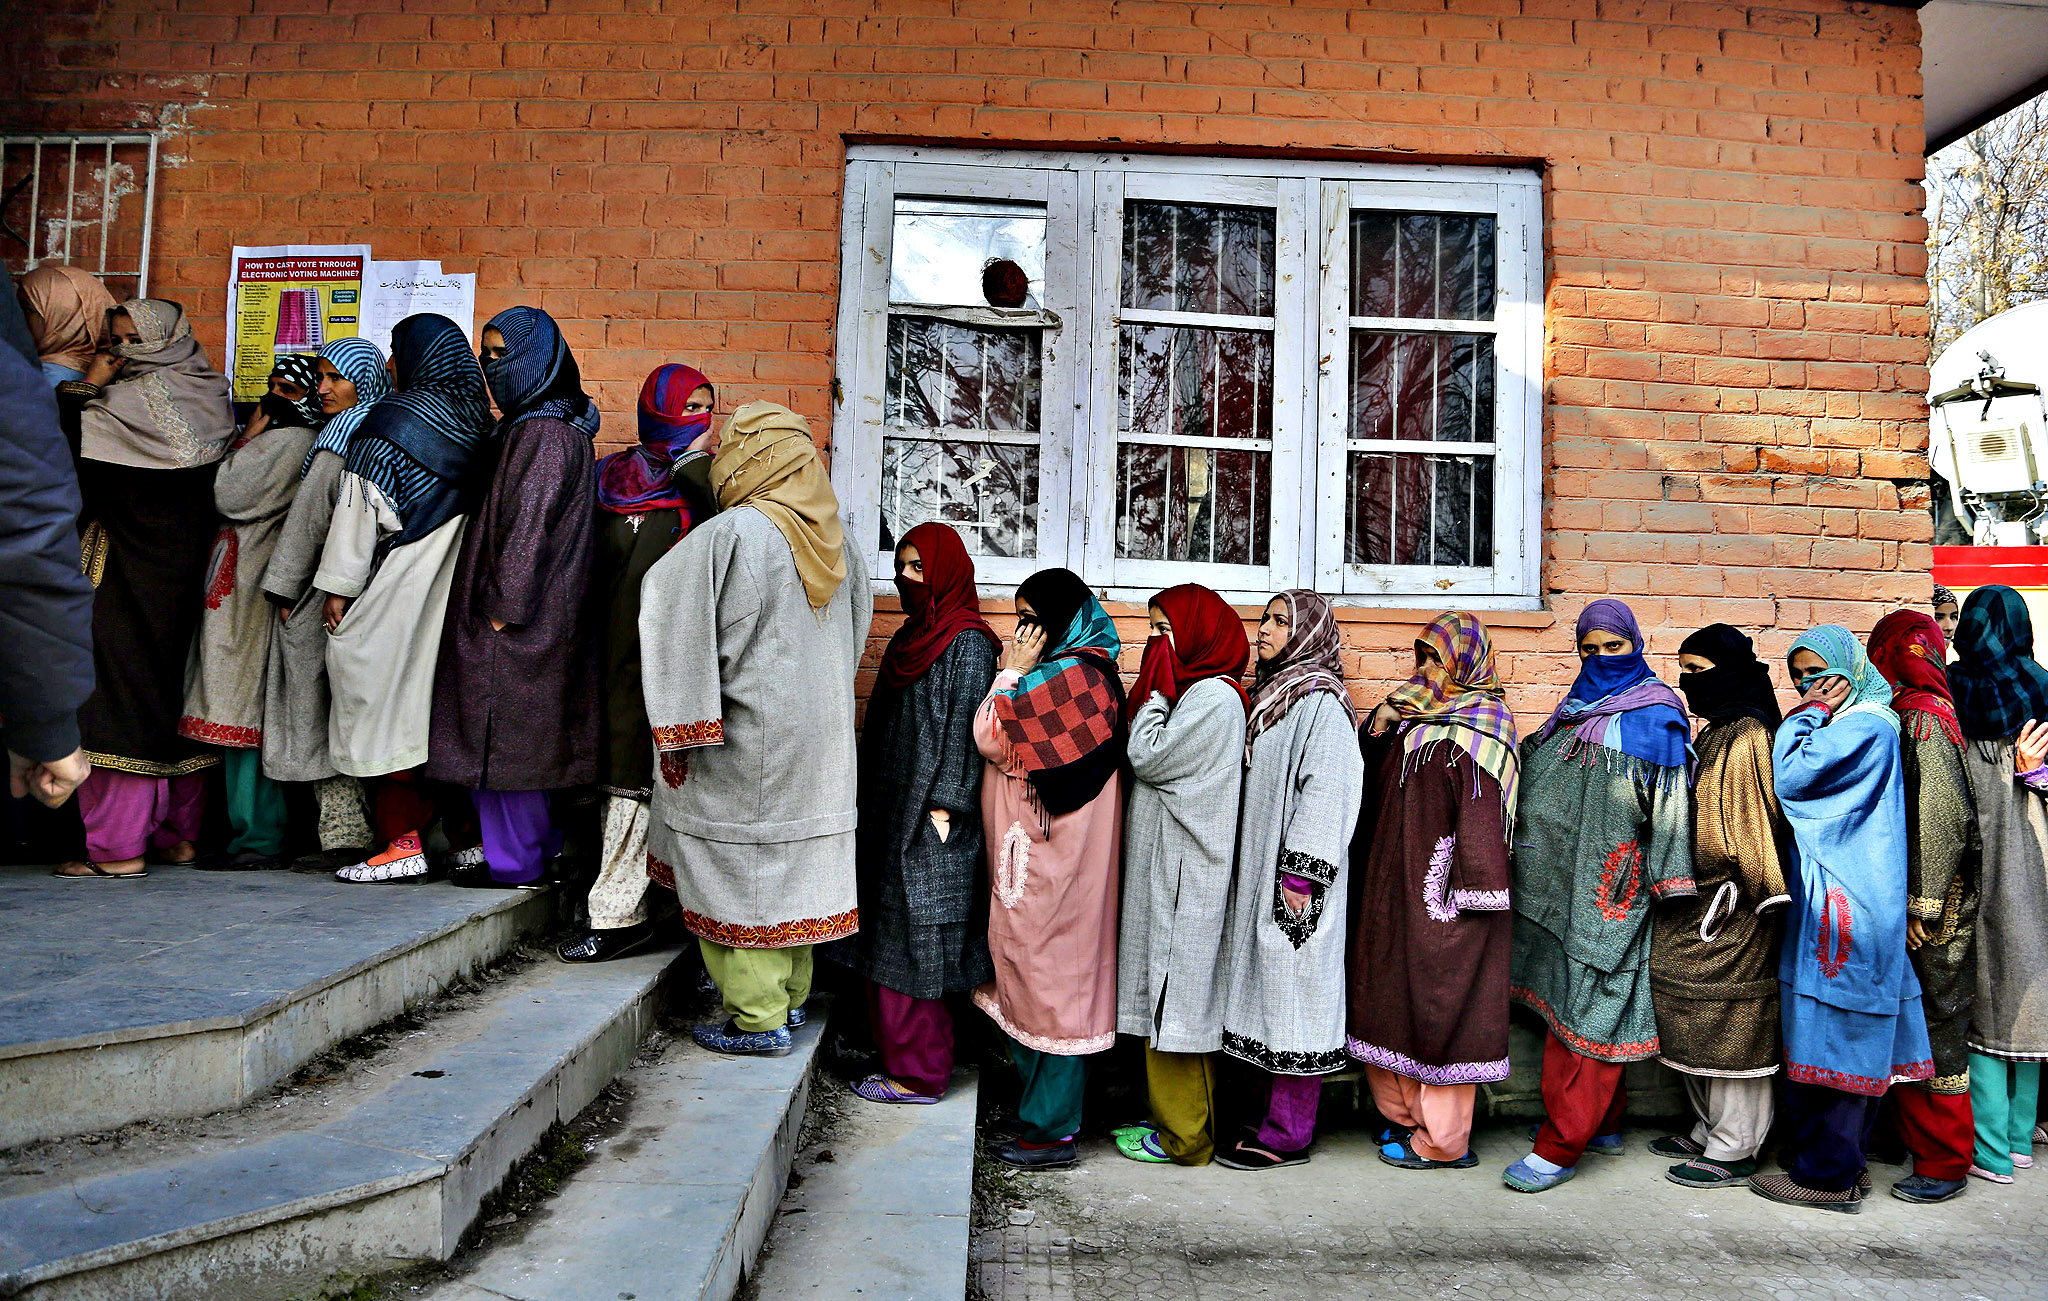 Kashmiri women stand in a queue to cast their votes during the third phase polling of the Jammu and Kashmir state elections in Budgham, about 28 kilometers (17 miles) south west of Srinagar, Indian controlled Kashmir, Tuesday, Dec. 9, 2014. The elections are being held in five stages to allow government forces to better guard against any violence or anti-India protests. Results are due Dec. 23.